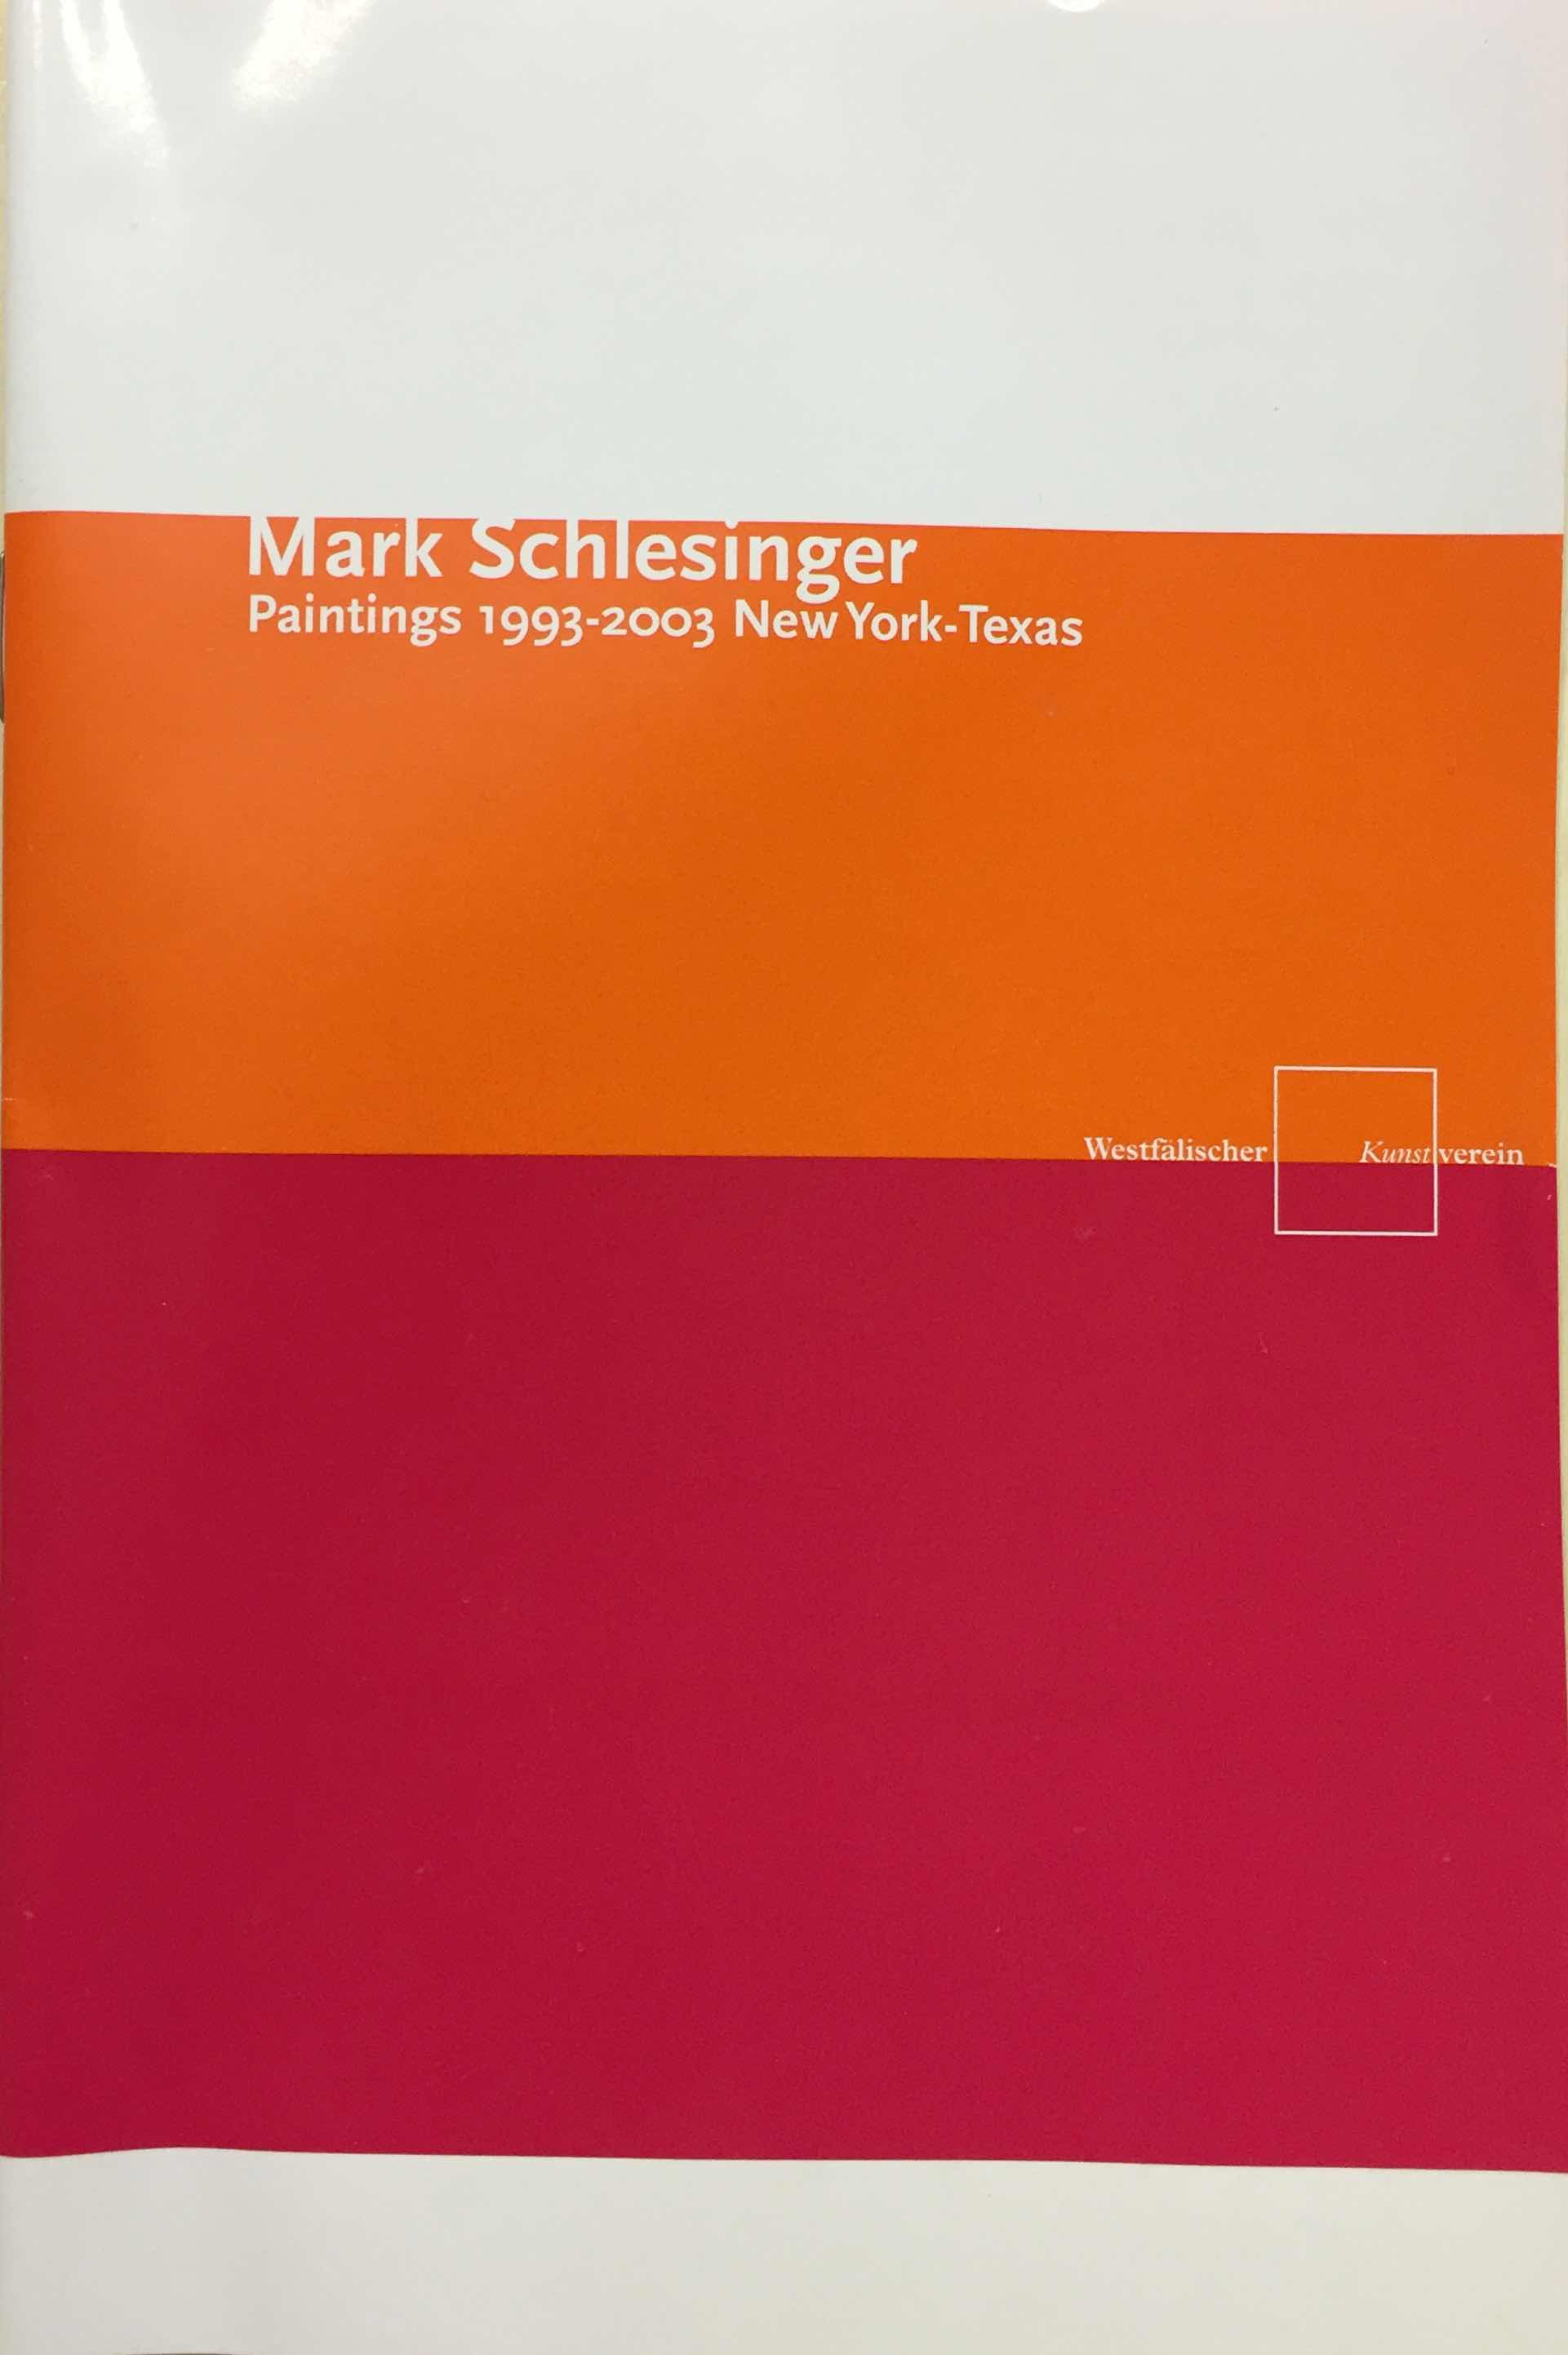 Download Catalog   Mark Schlesinger: Paintings 1993-2003 New York-Texas  Essay by David Pagel. Painting Echoes.  Interview of Mark Schlesinger by Carina Plath. Q&A.  2004. Westfaelischer Kunstverein, Muenster, Germany.